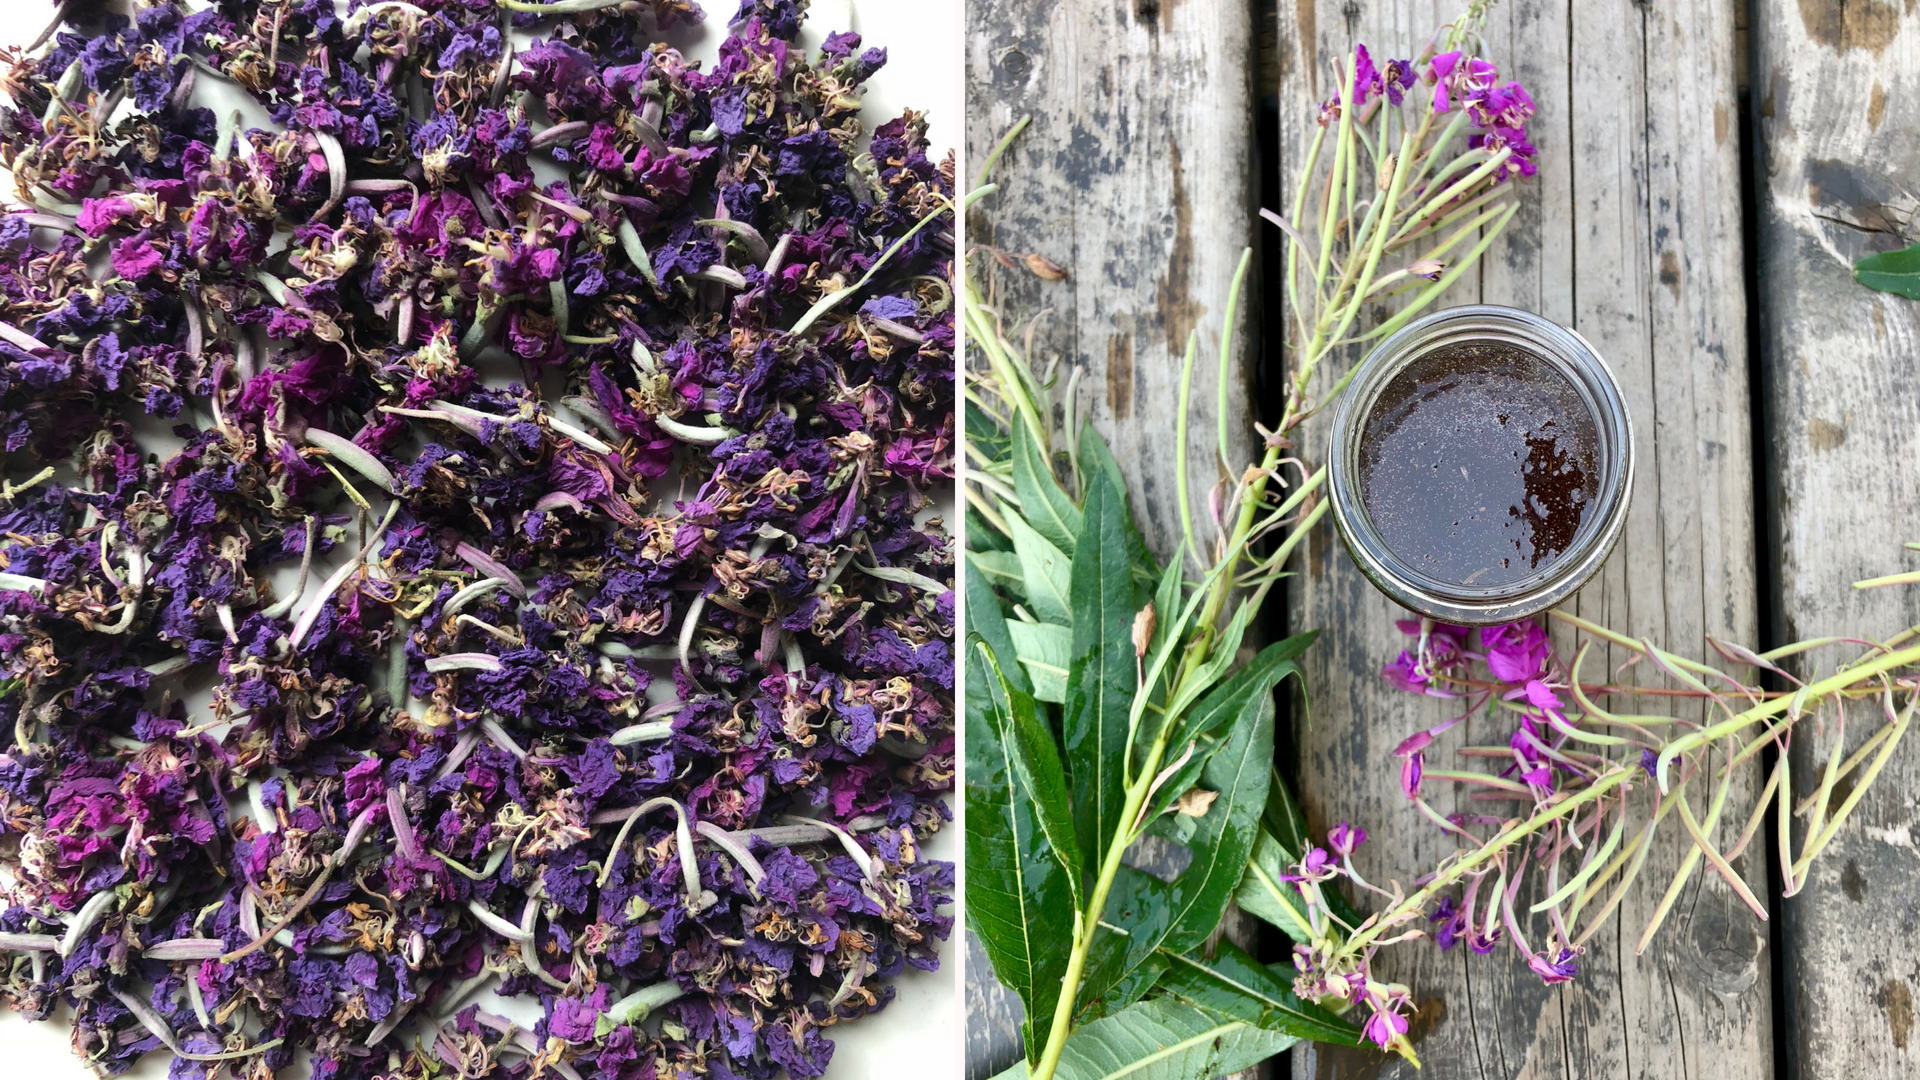 Dried fireweed flowers and homemade fireweed syrup.